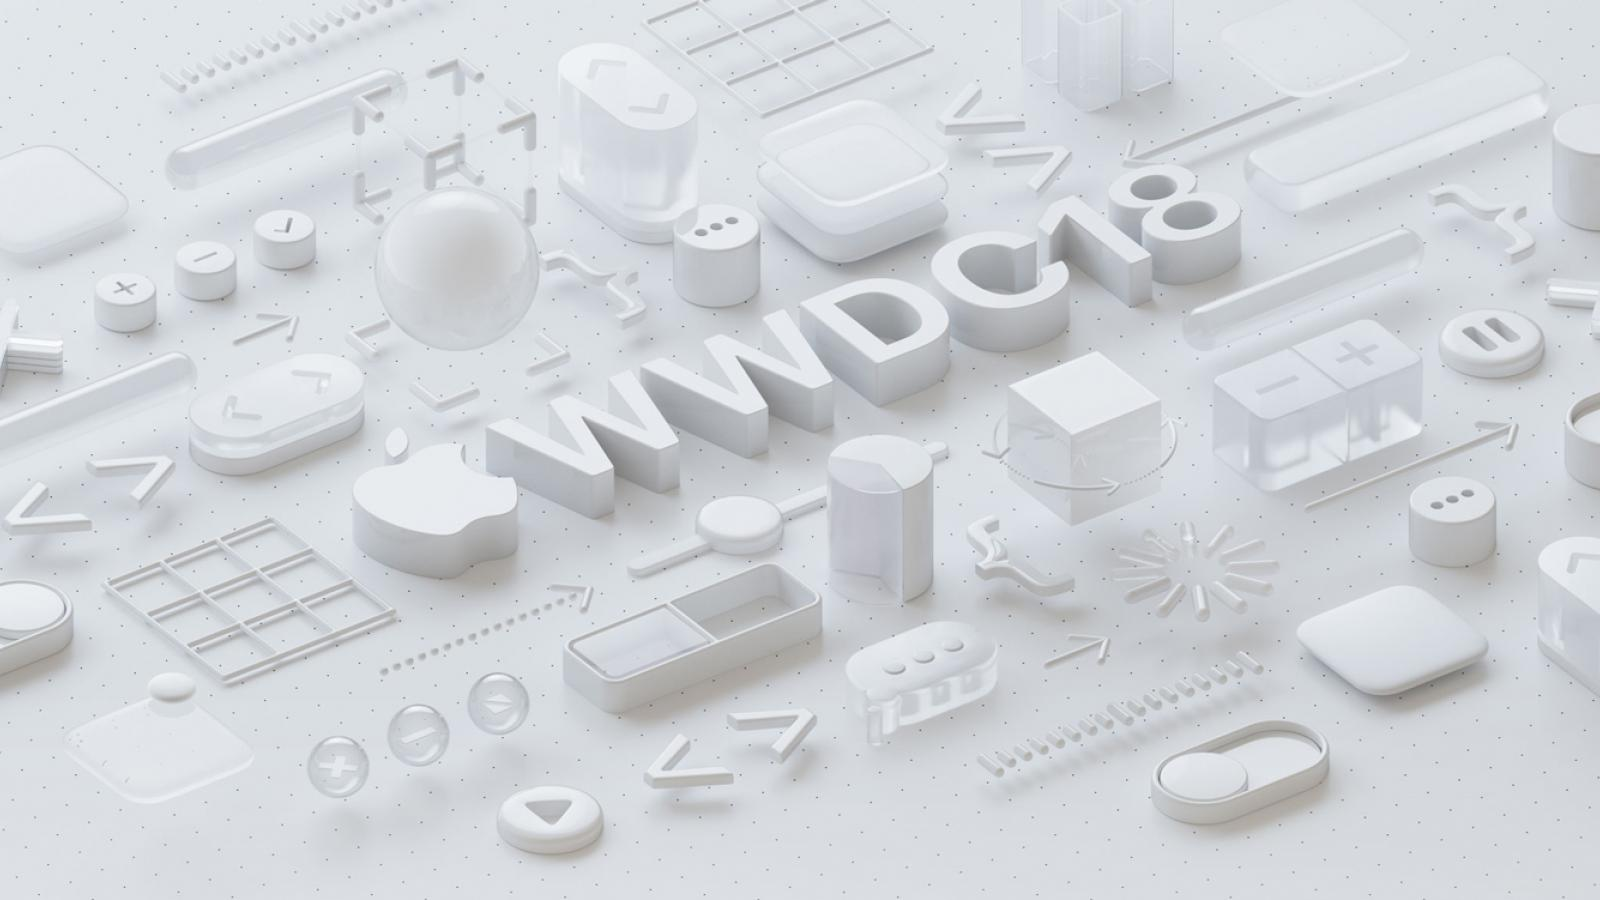 WWDC 2018: Our Highlights on Apple's Developer Conference